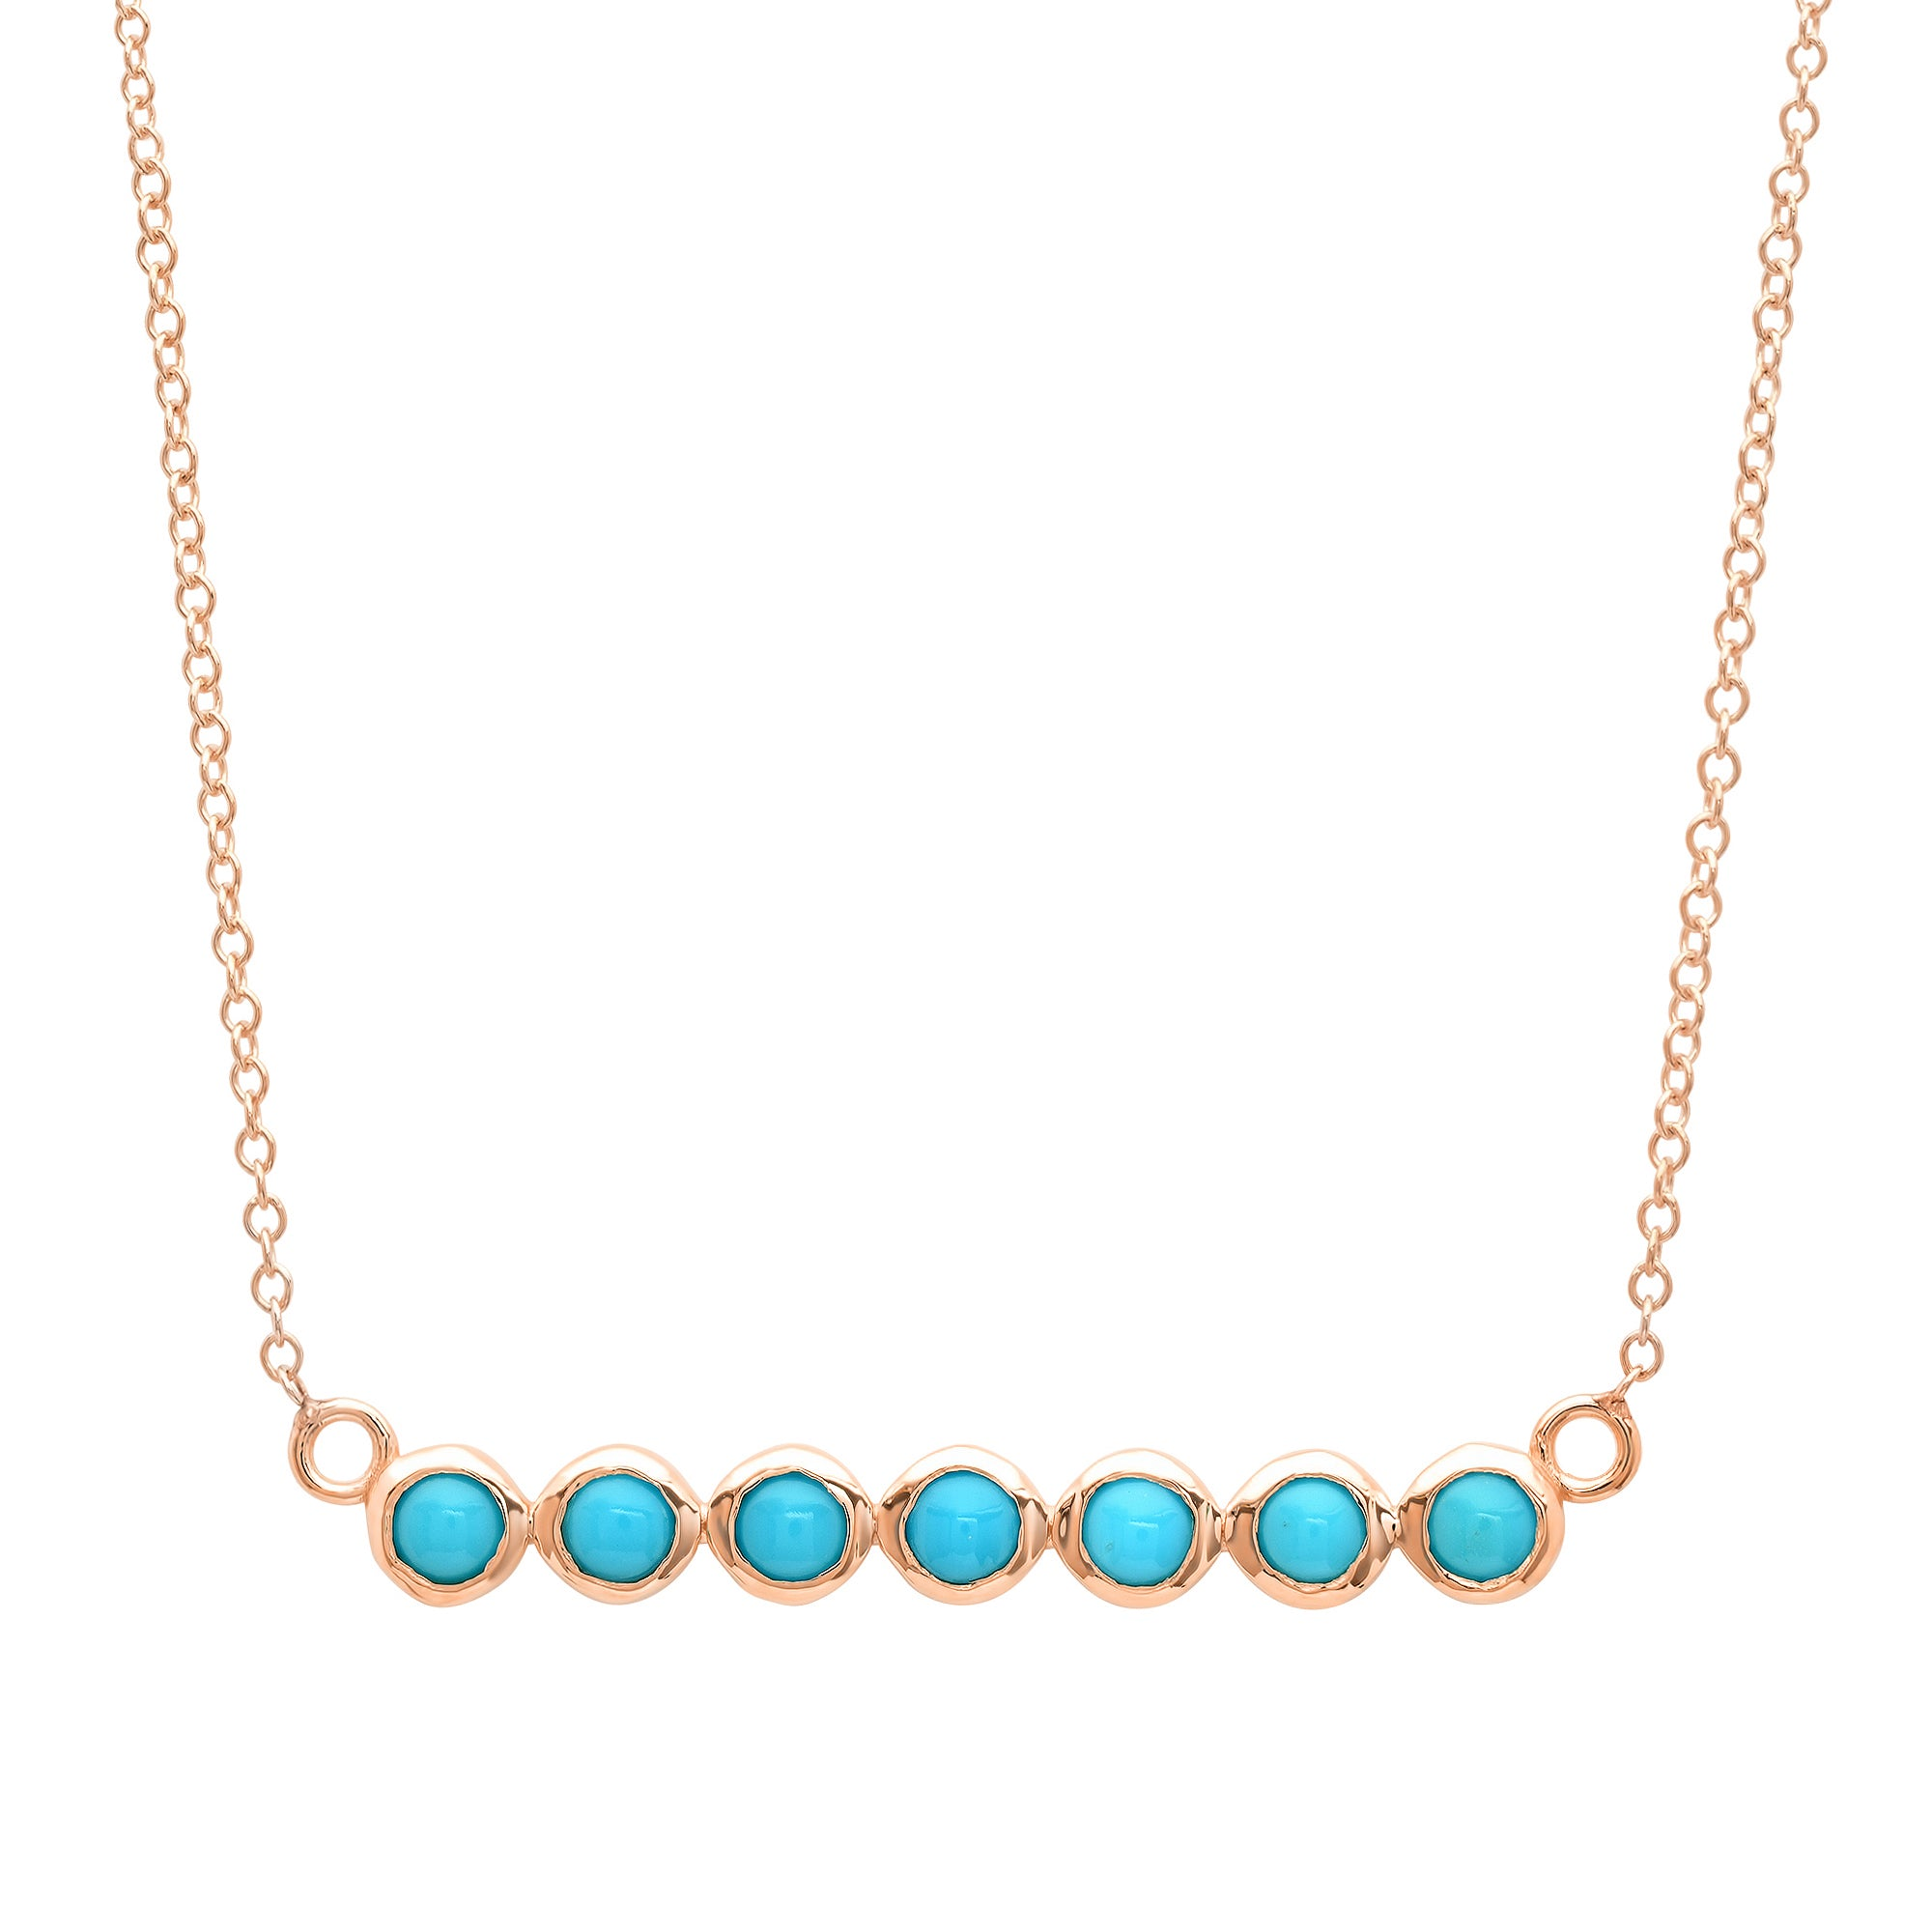 7 Turquoise Stone Bar Necklace